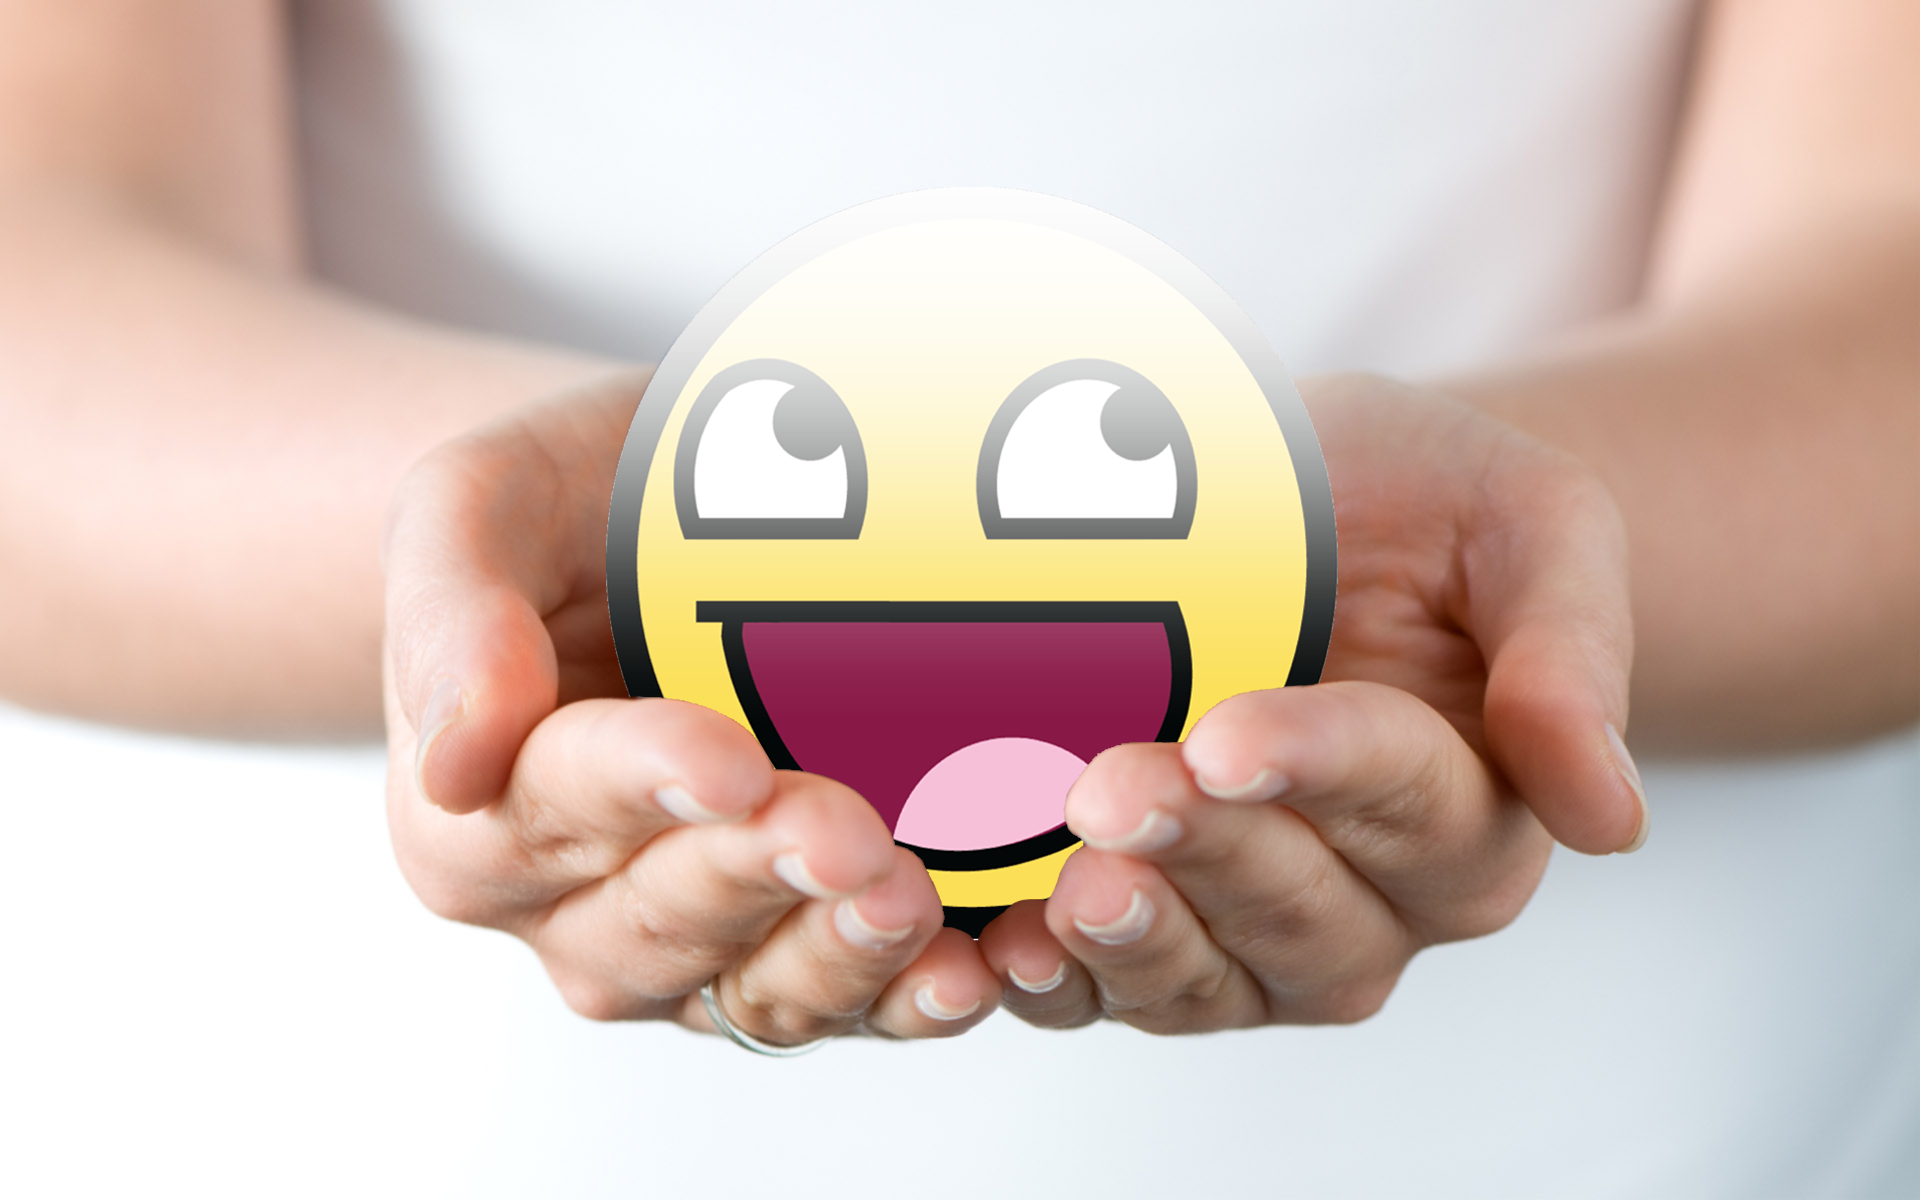 awesome wallpaper smiley art wingedturt1e 1920x1200